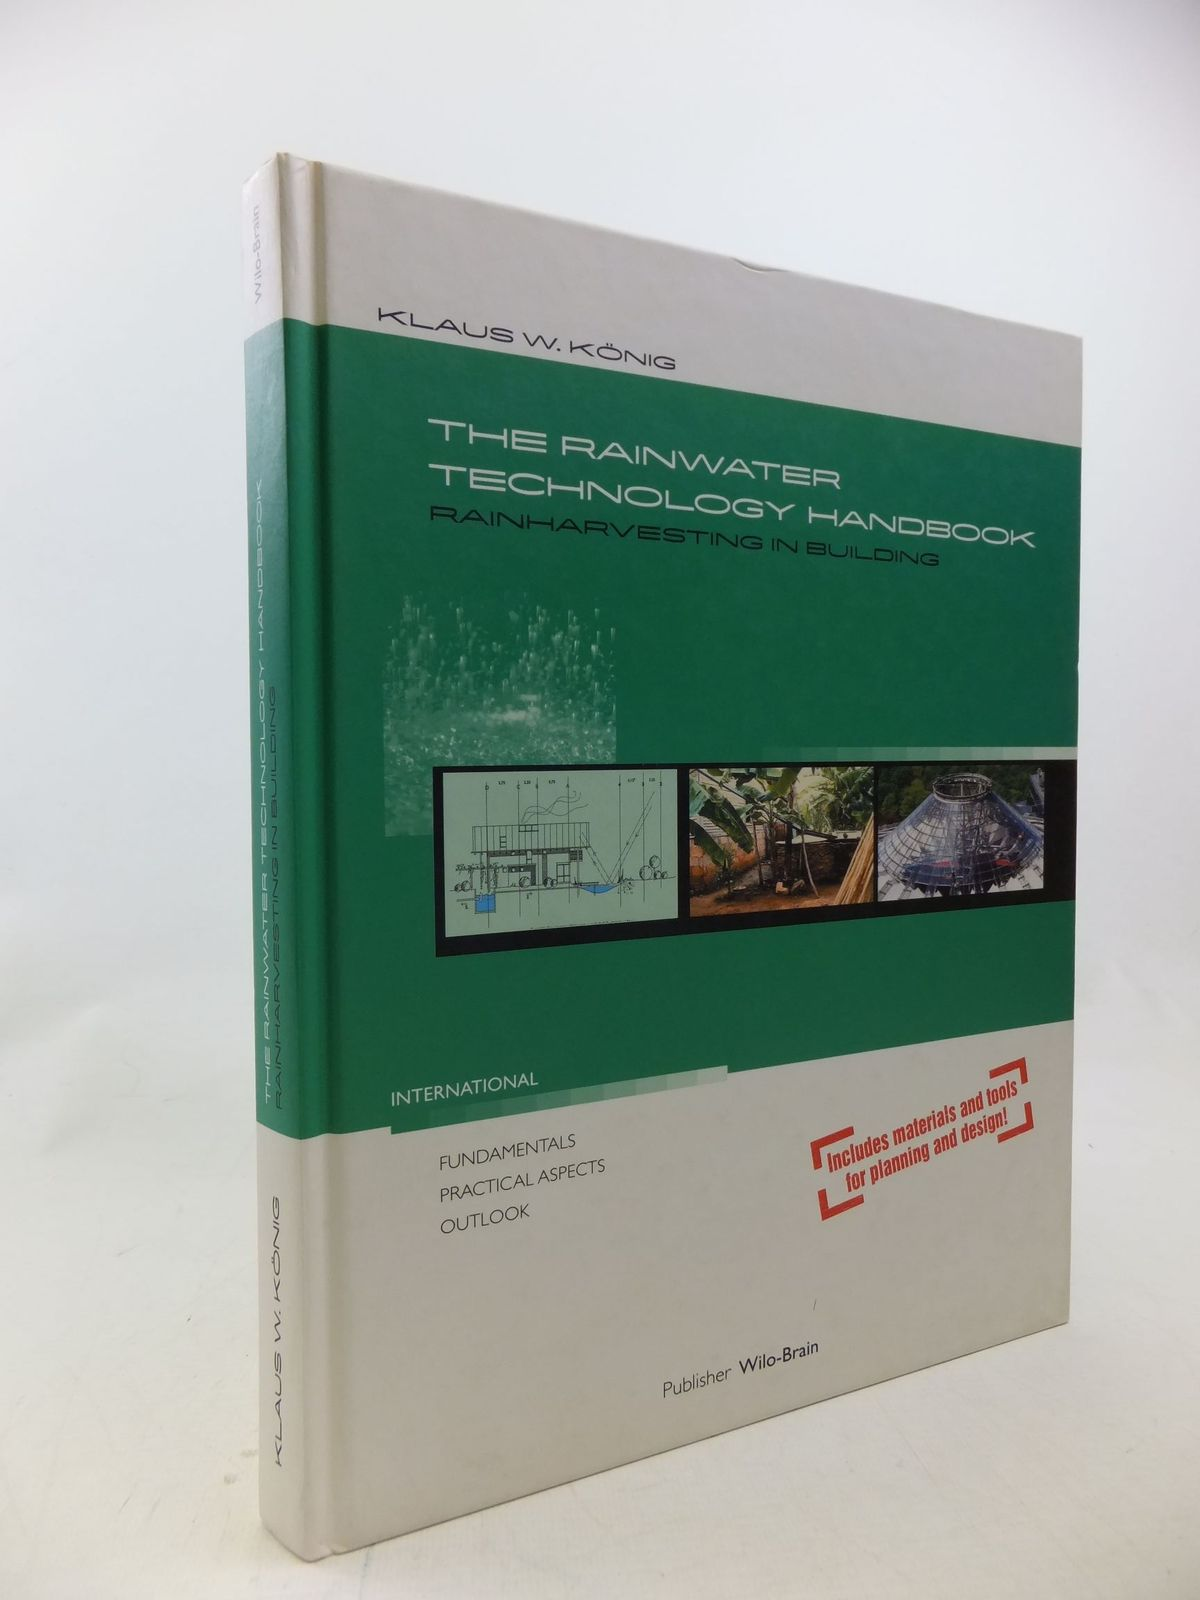 Photo of THE RAINWATER TECHNOLOGY HANDBOOK RAINHARVESTING IN BUILDING written by Konig, Klaus published by Wilo-Brain (STOCK CODE: 1710641)  for sale by Stella & Rose's Books